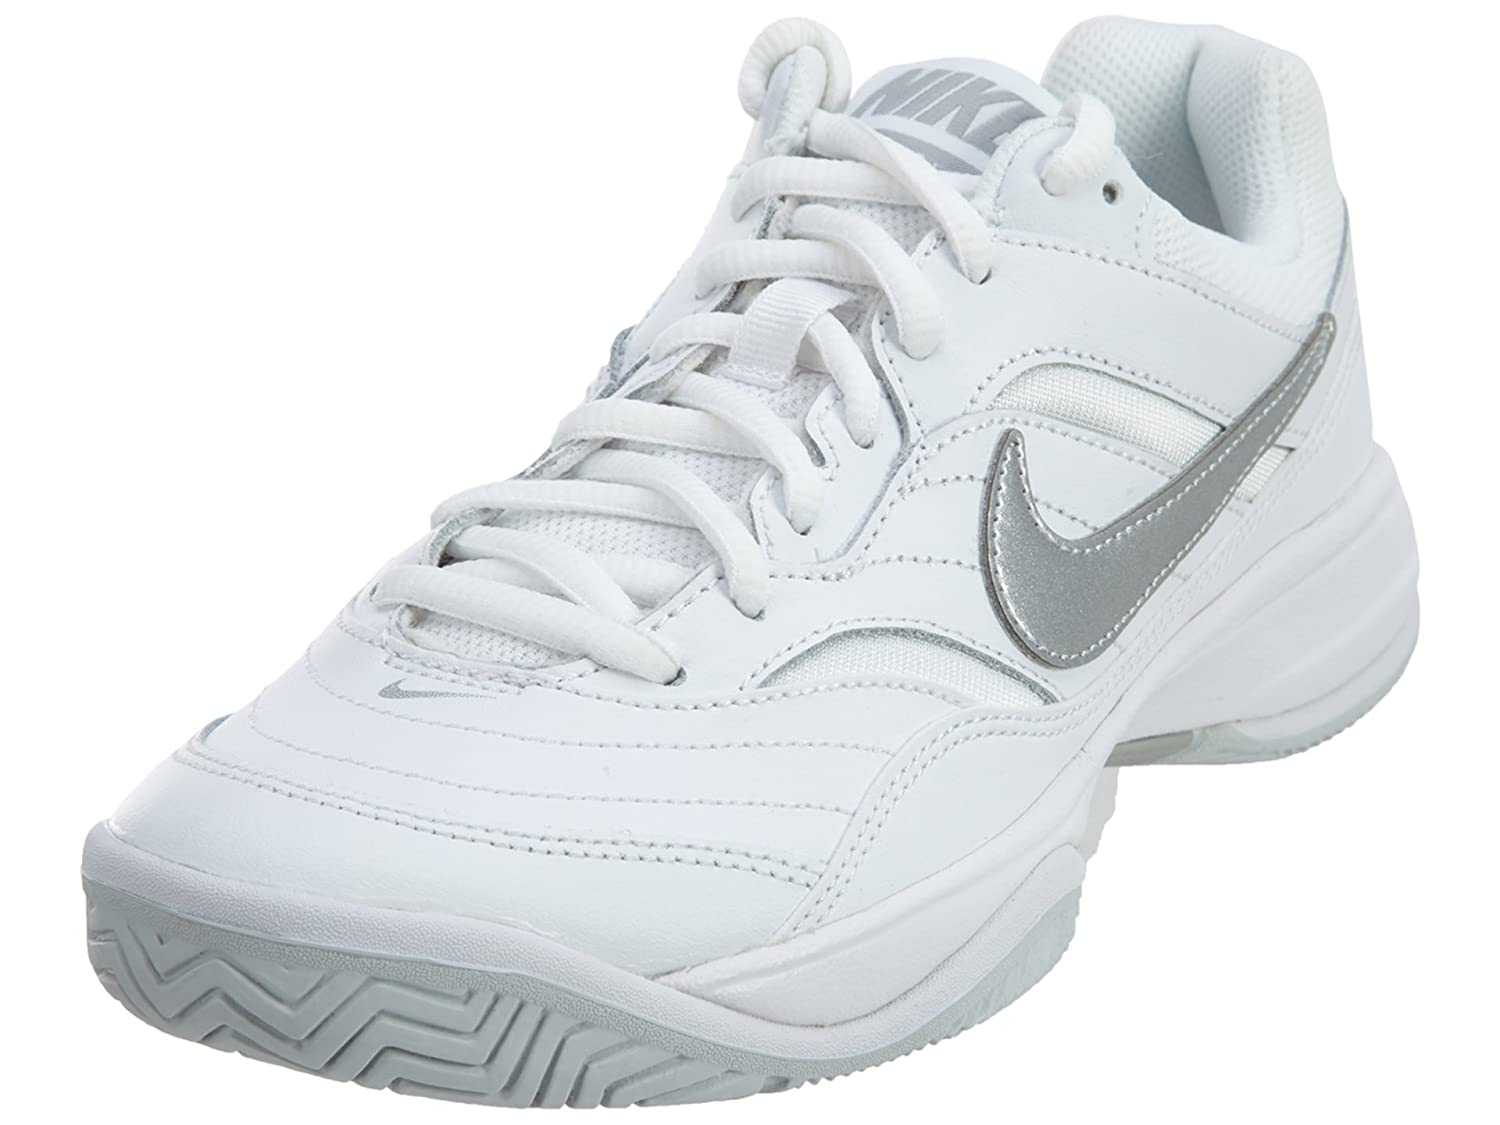 NIKE Women's Court Lite Tennis Shoe B01A67T44E 5 M US|White/Metallic Silver - Medium Grey